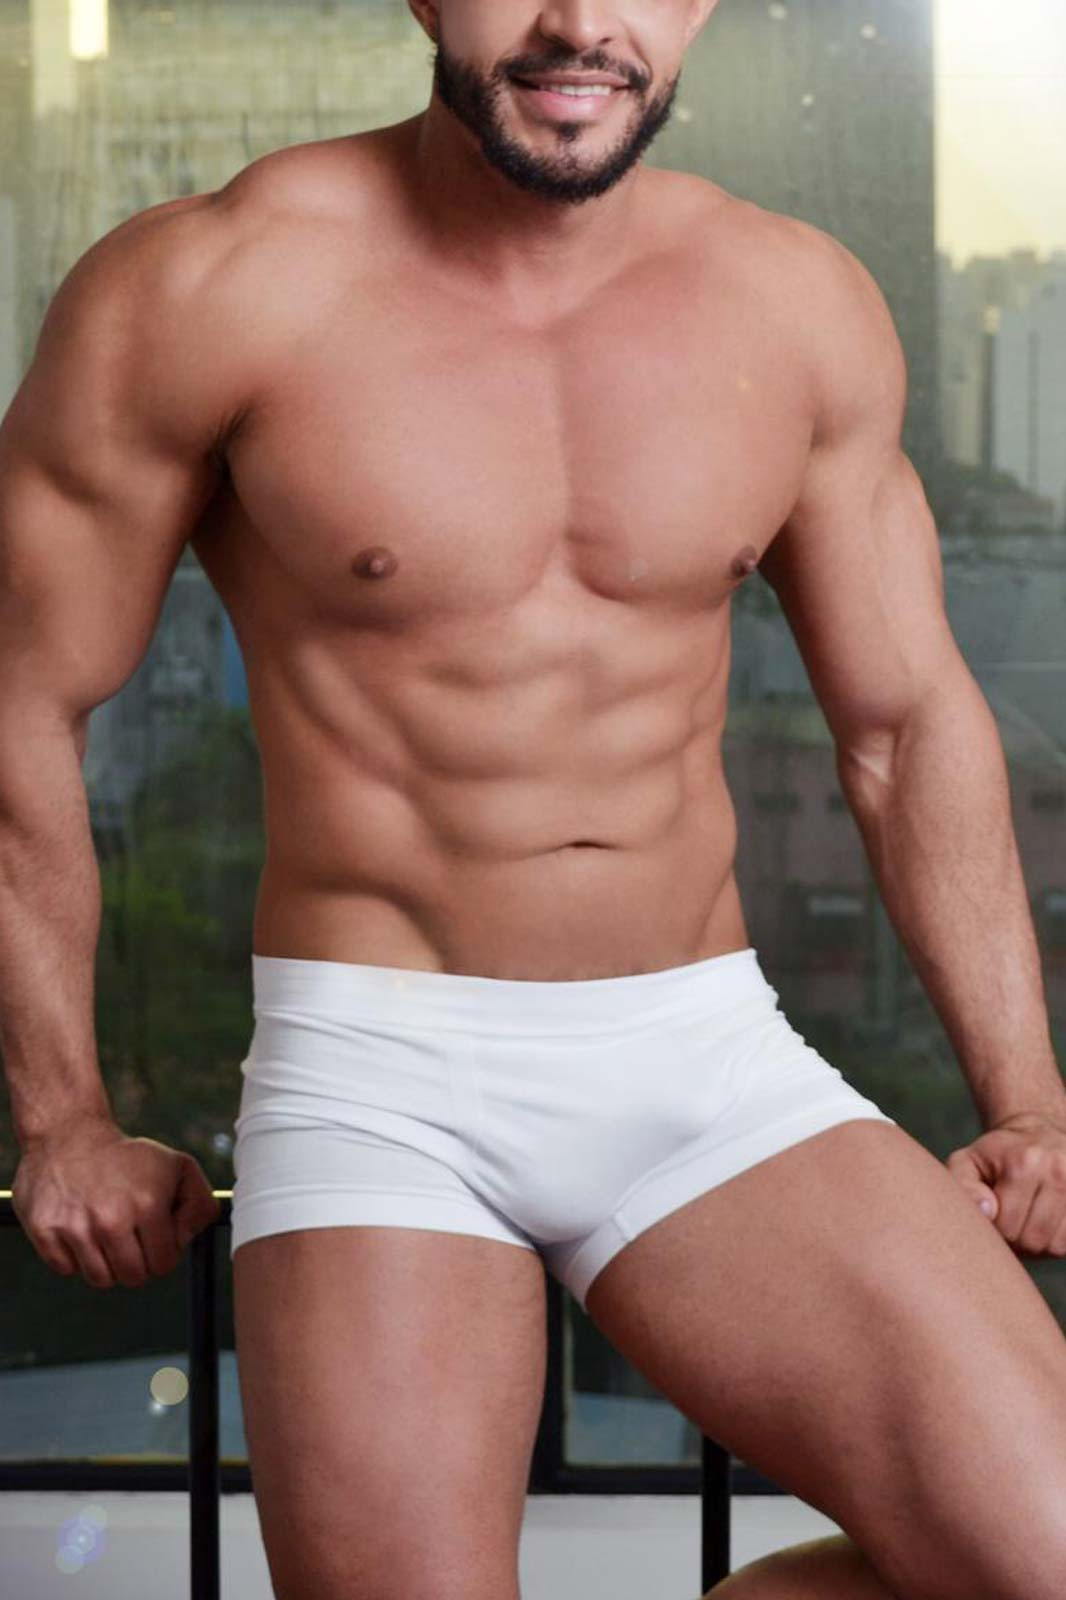 masseur ricardo : muscular latin male wearing white trunks, sitting down and smiling